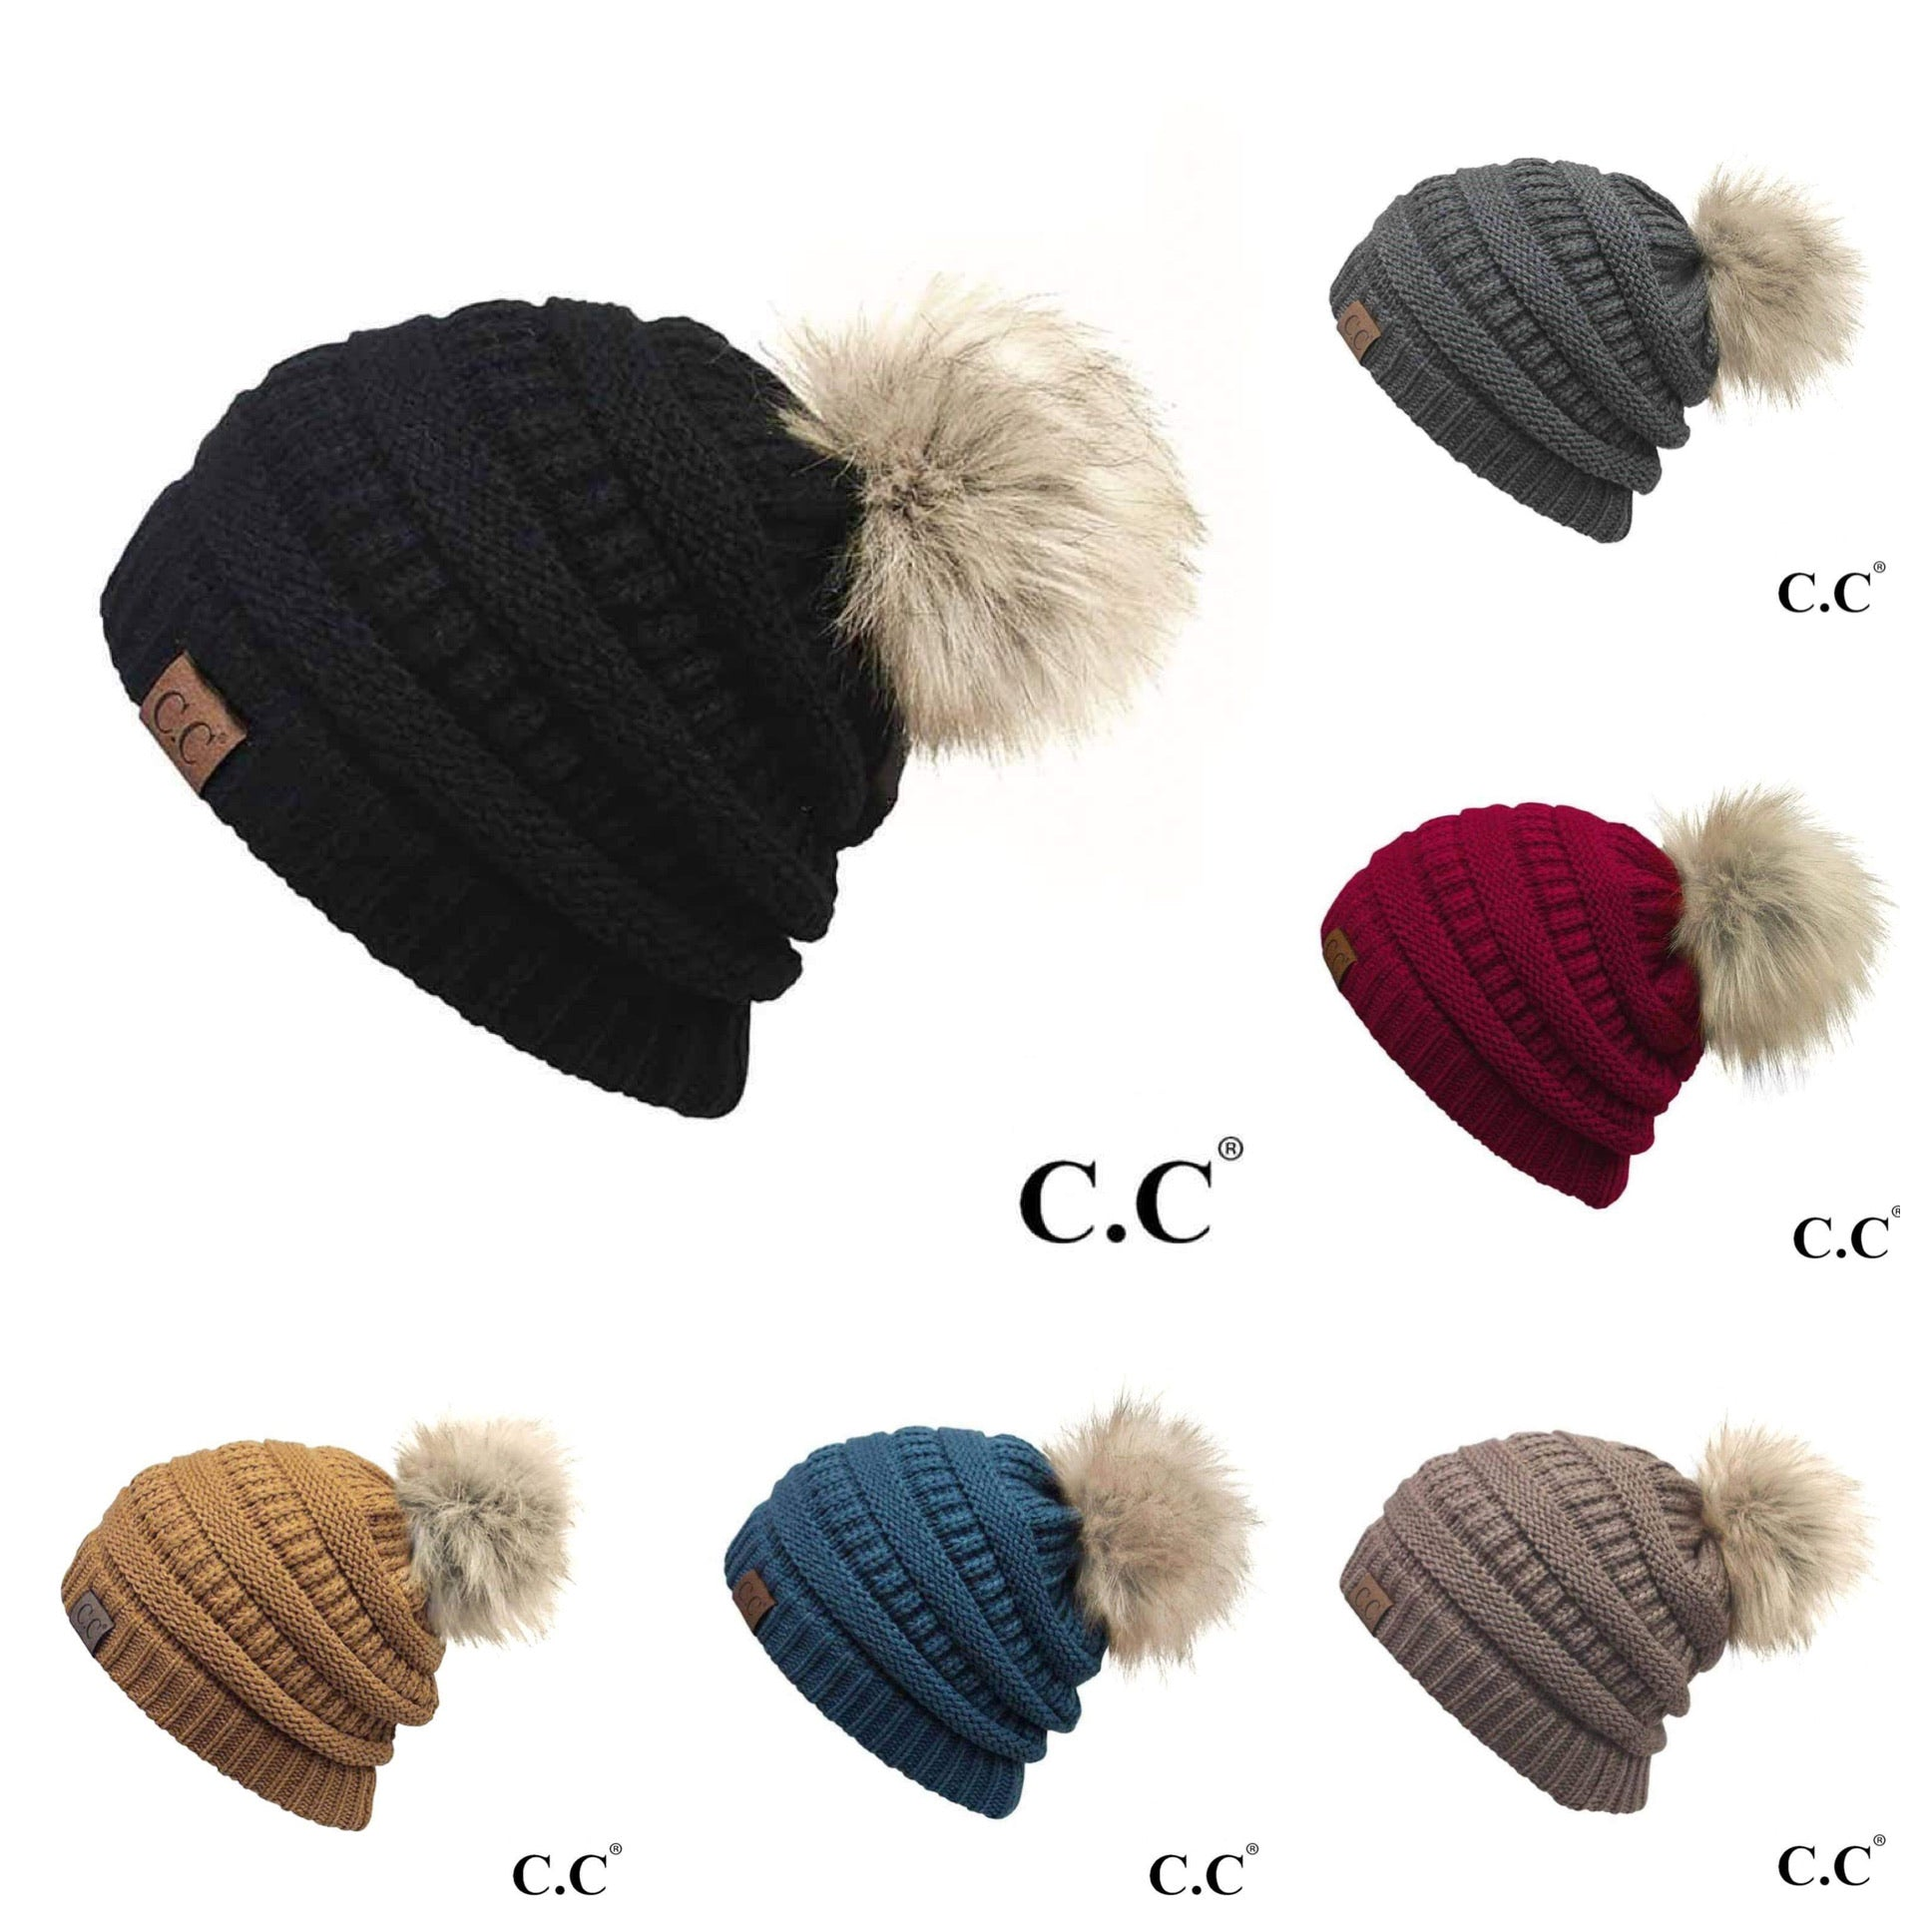 Adult Beanie with Puff